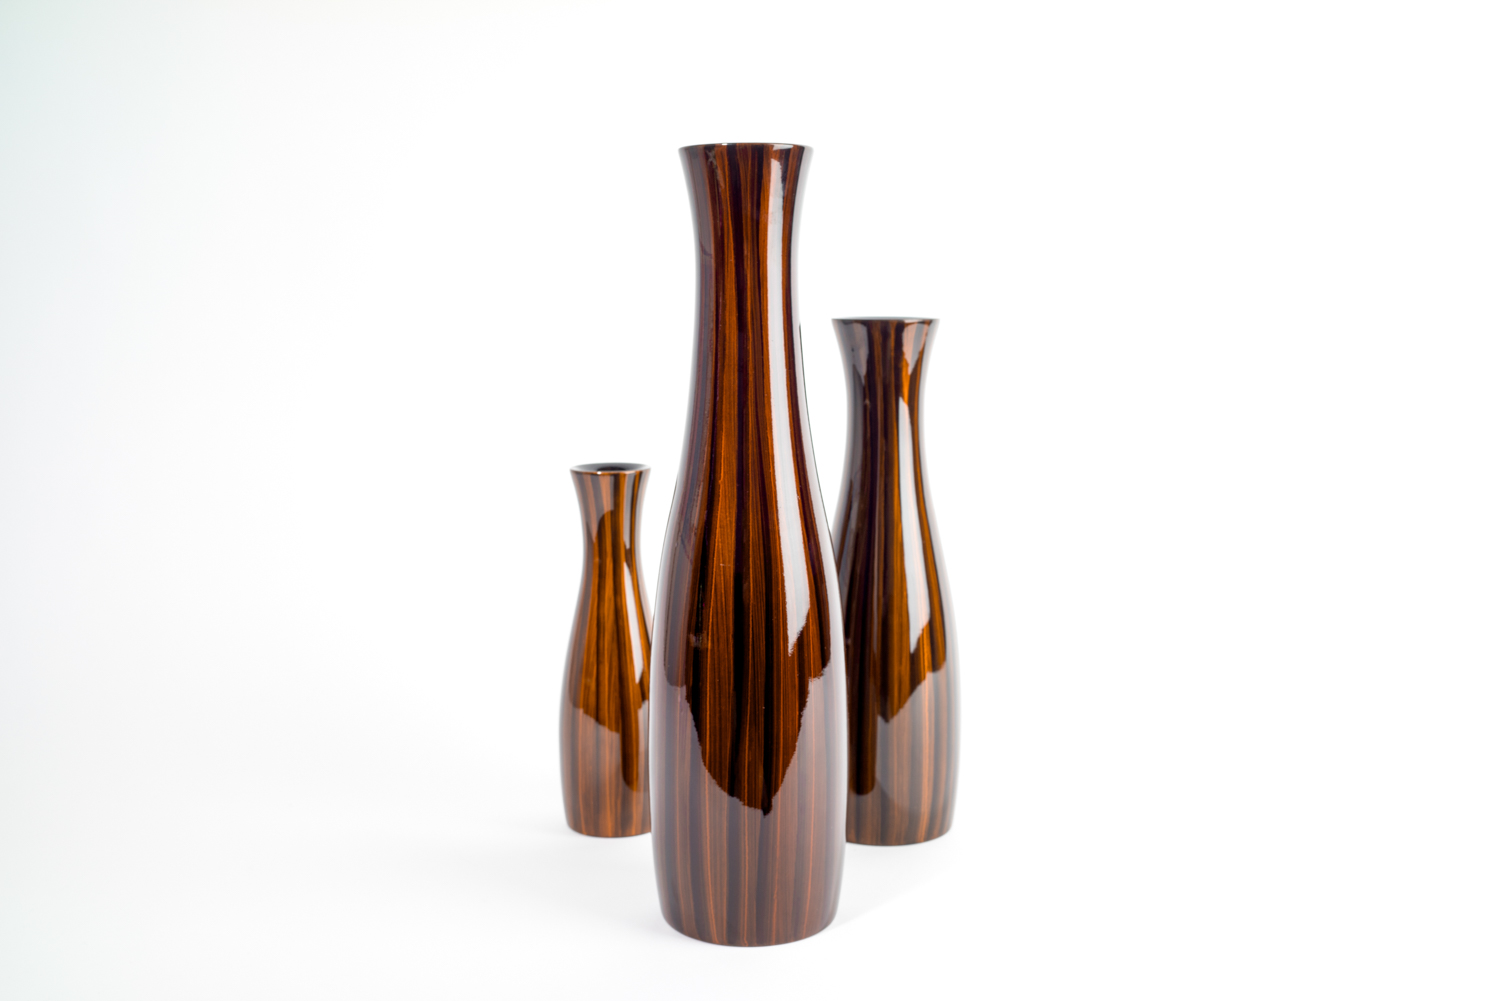 Tiger's Eye wooden lacquer vases. Available in three sizes, 25cm, 35cm and 45cm.